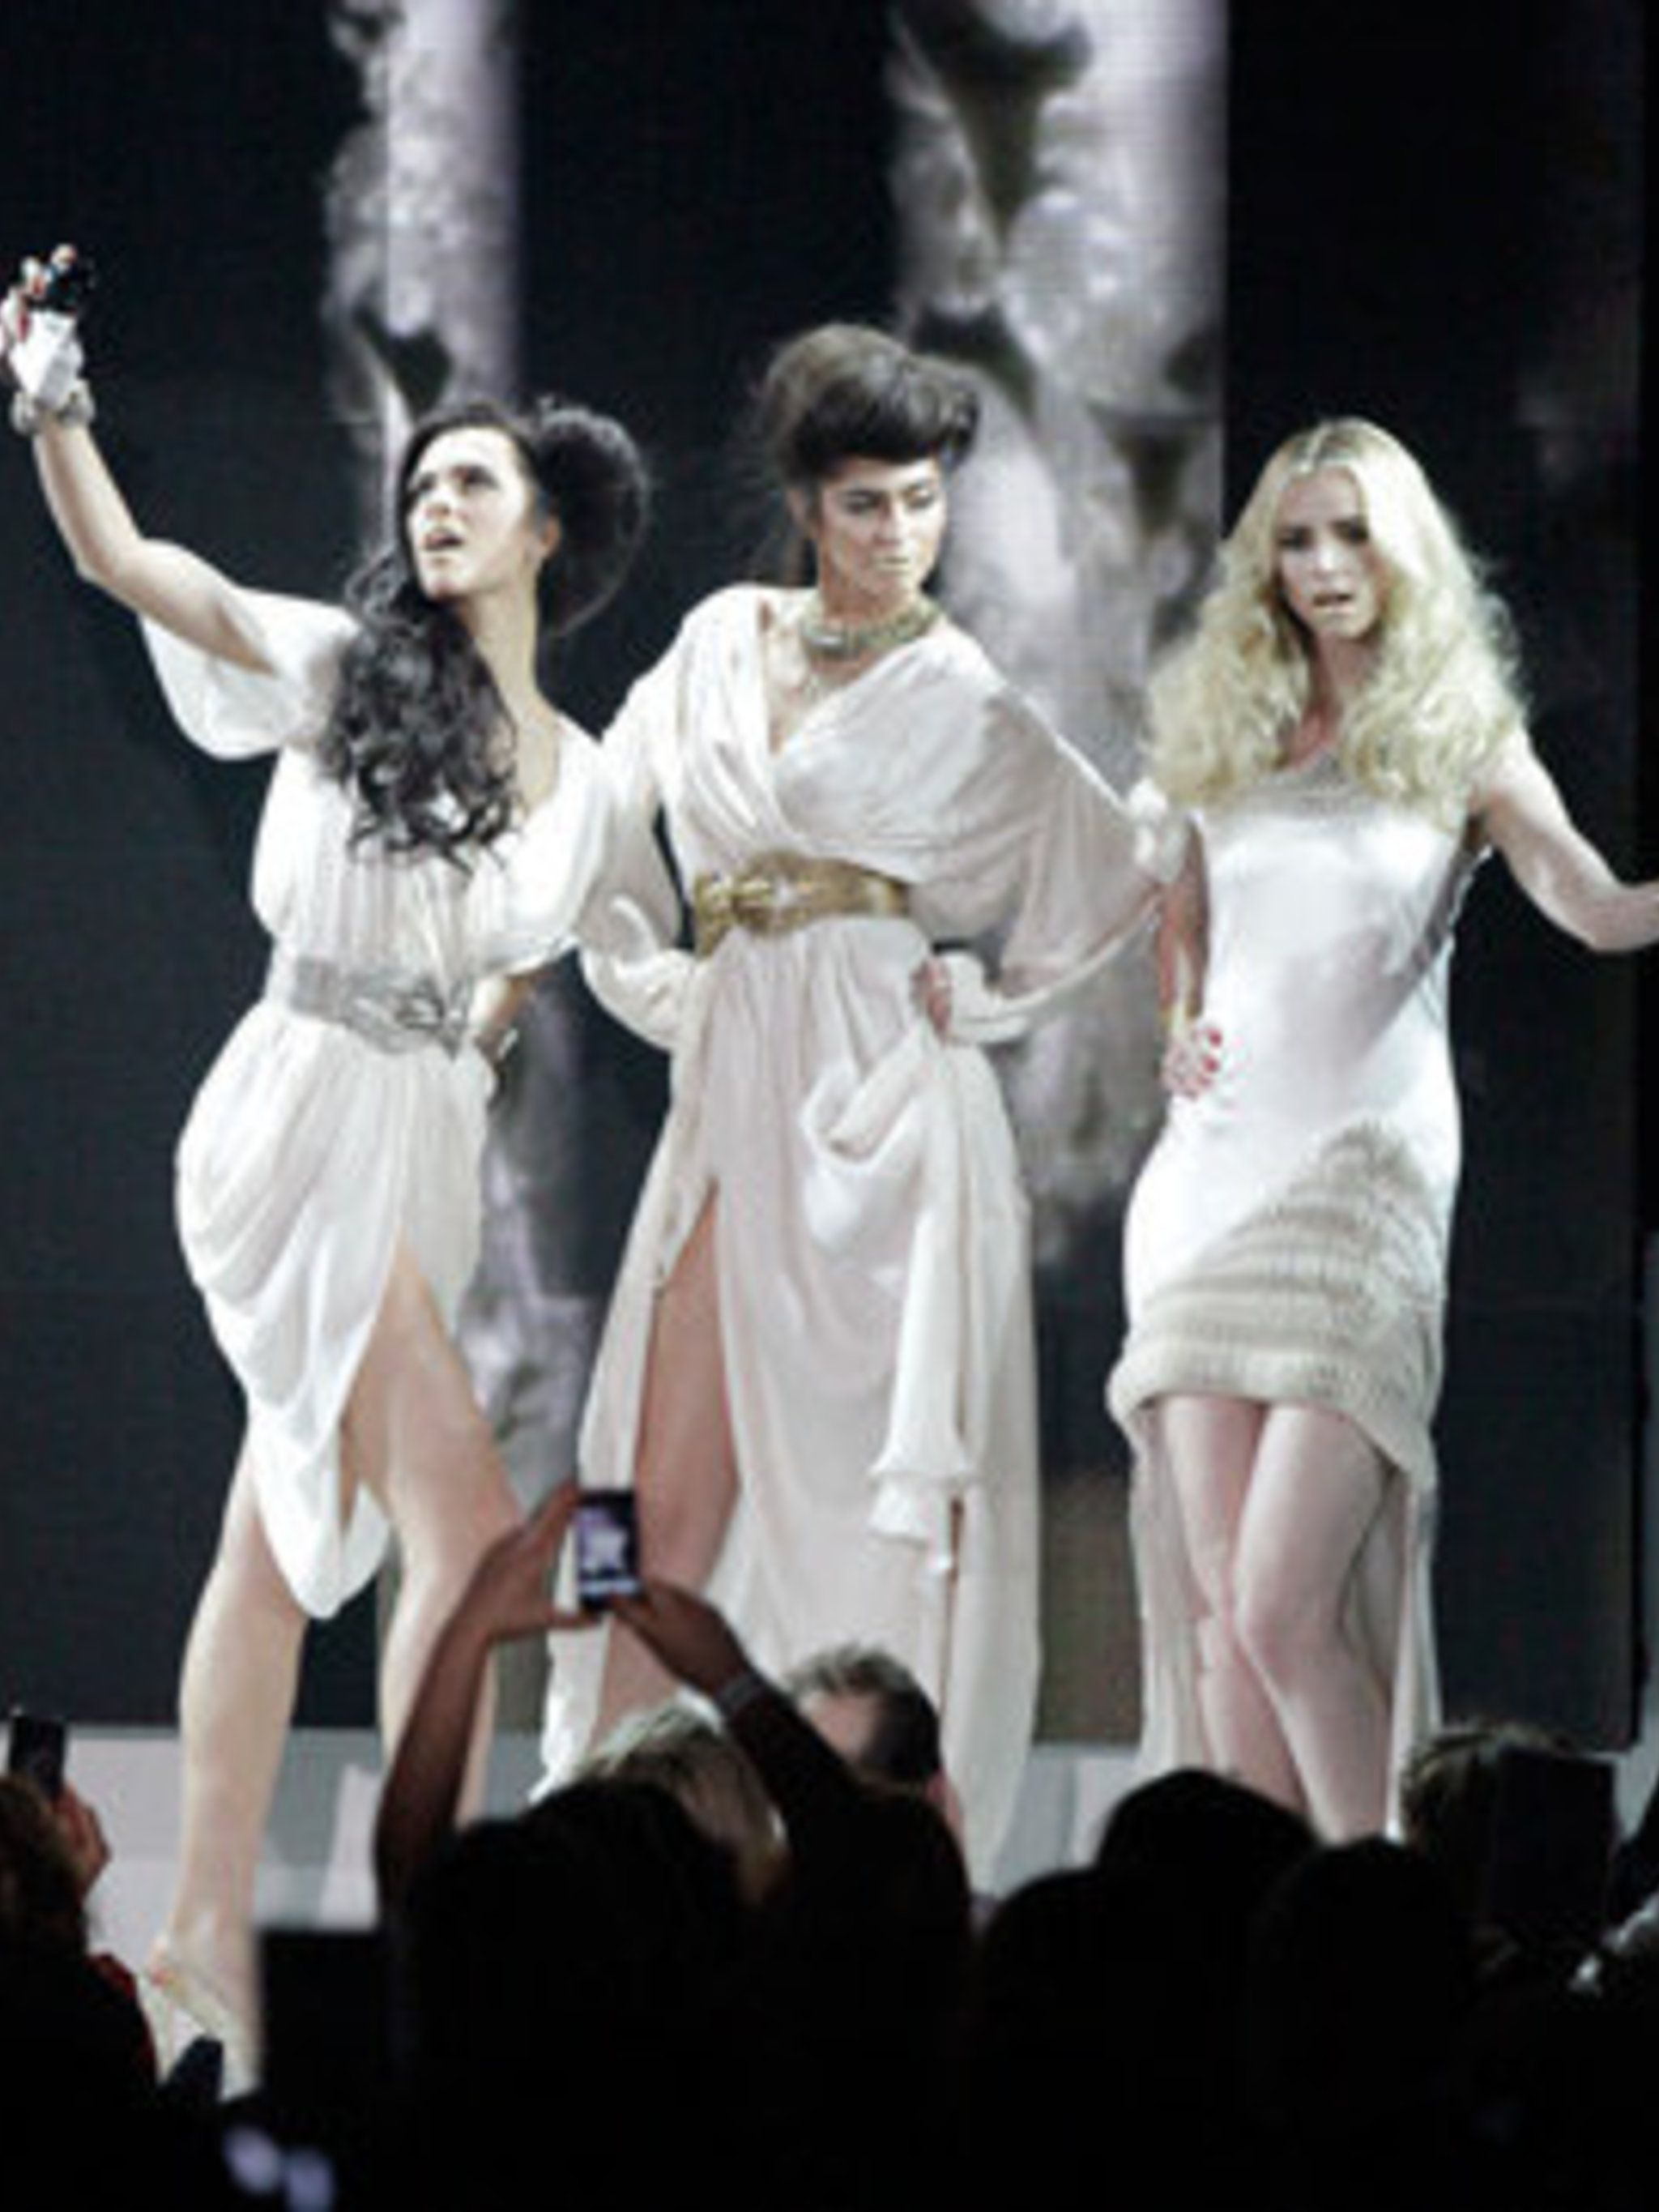 <p>Models on stage at the L'Oreal Colour Trophy Awards</p>